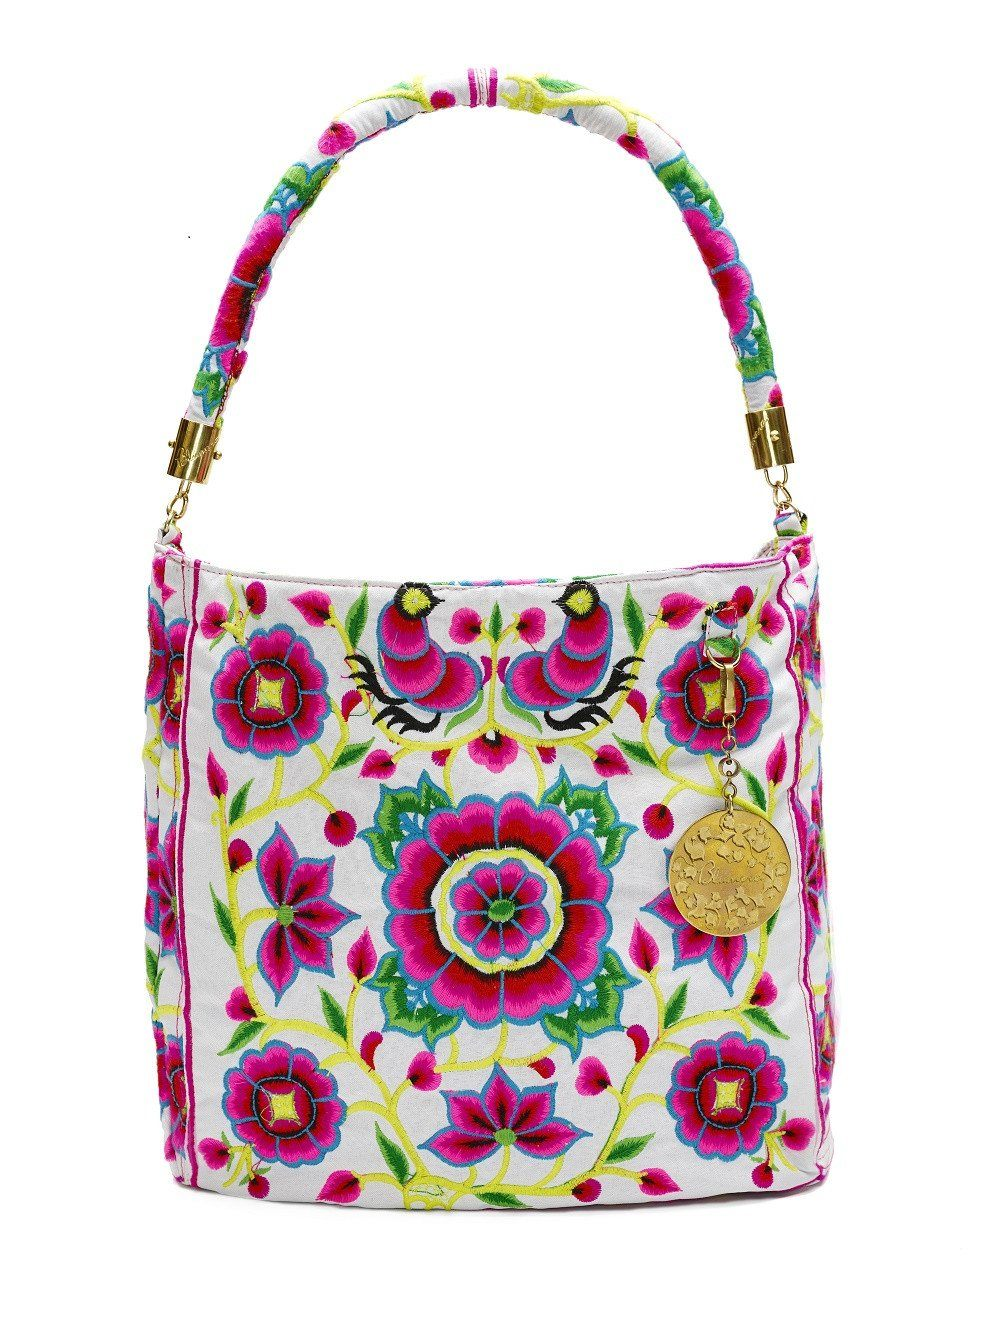 Nadine White Shoulder Bag - Blumera